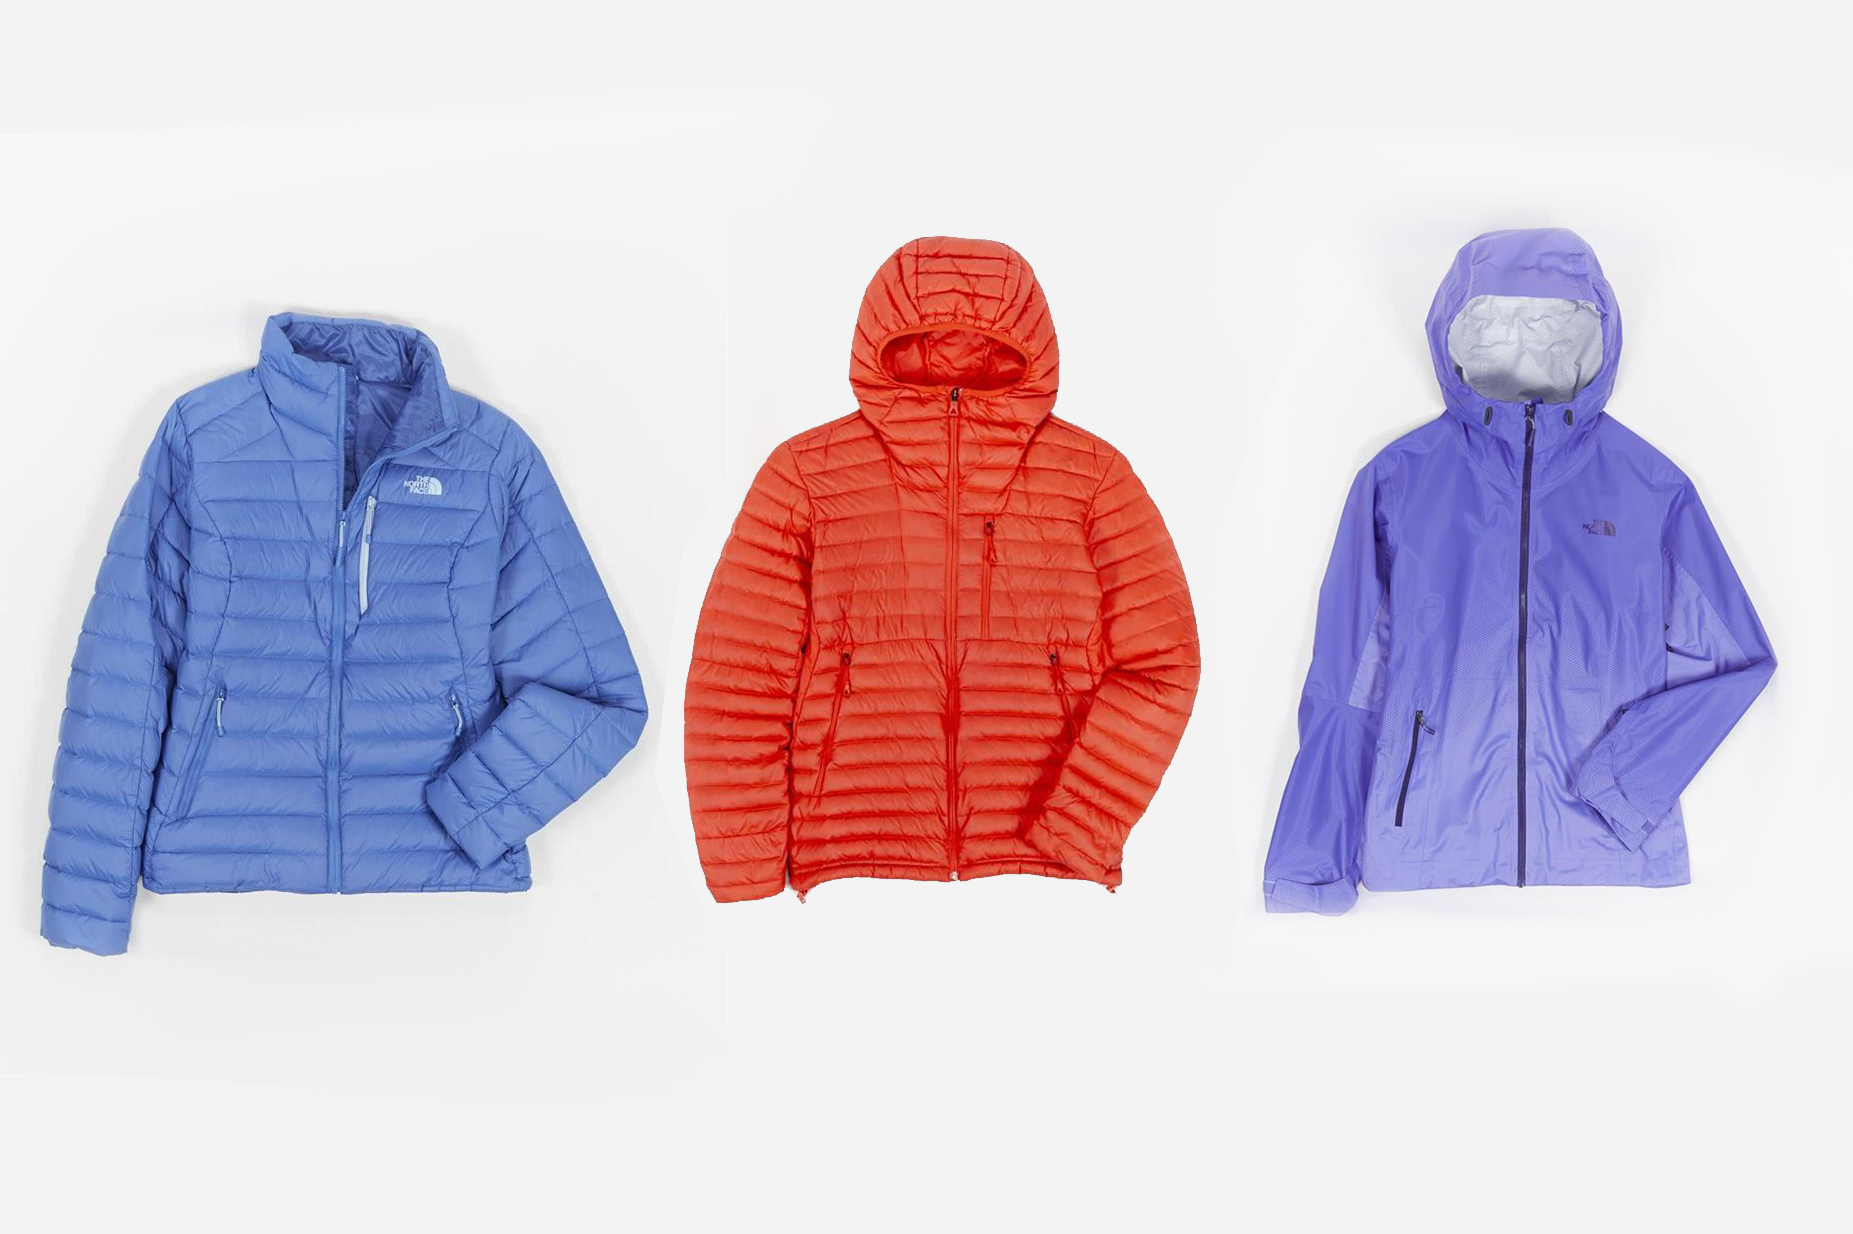 2d138d6e10 Used Gear Trend? The North Face Launches Refurbished Collection ...